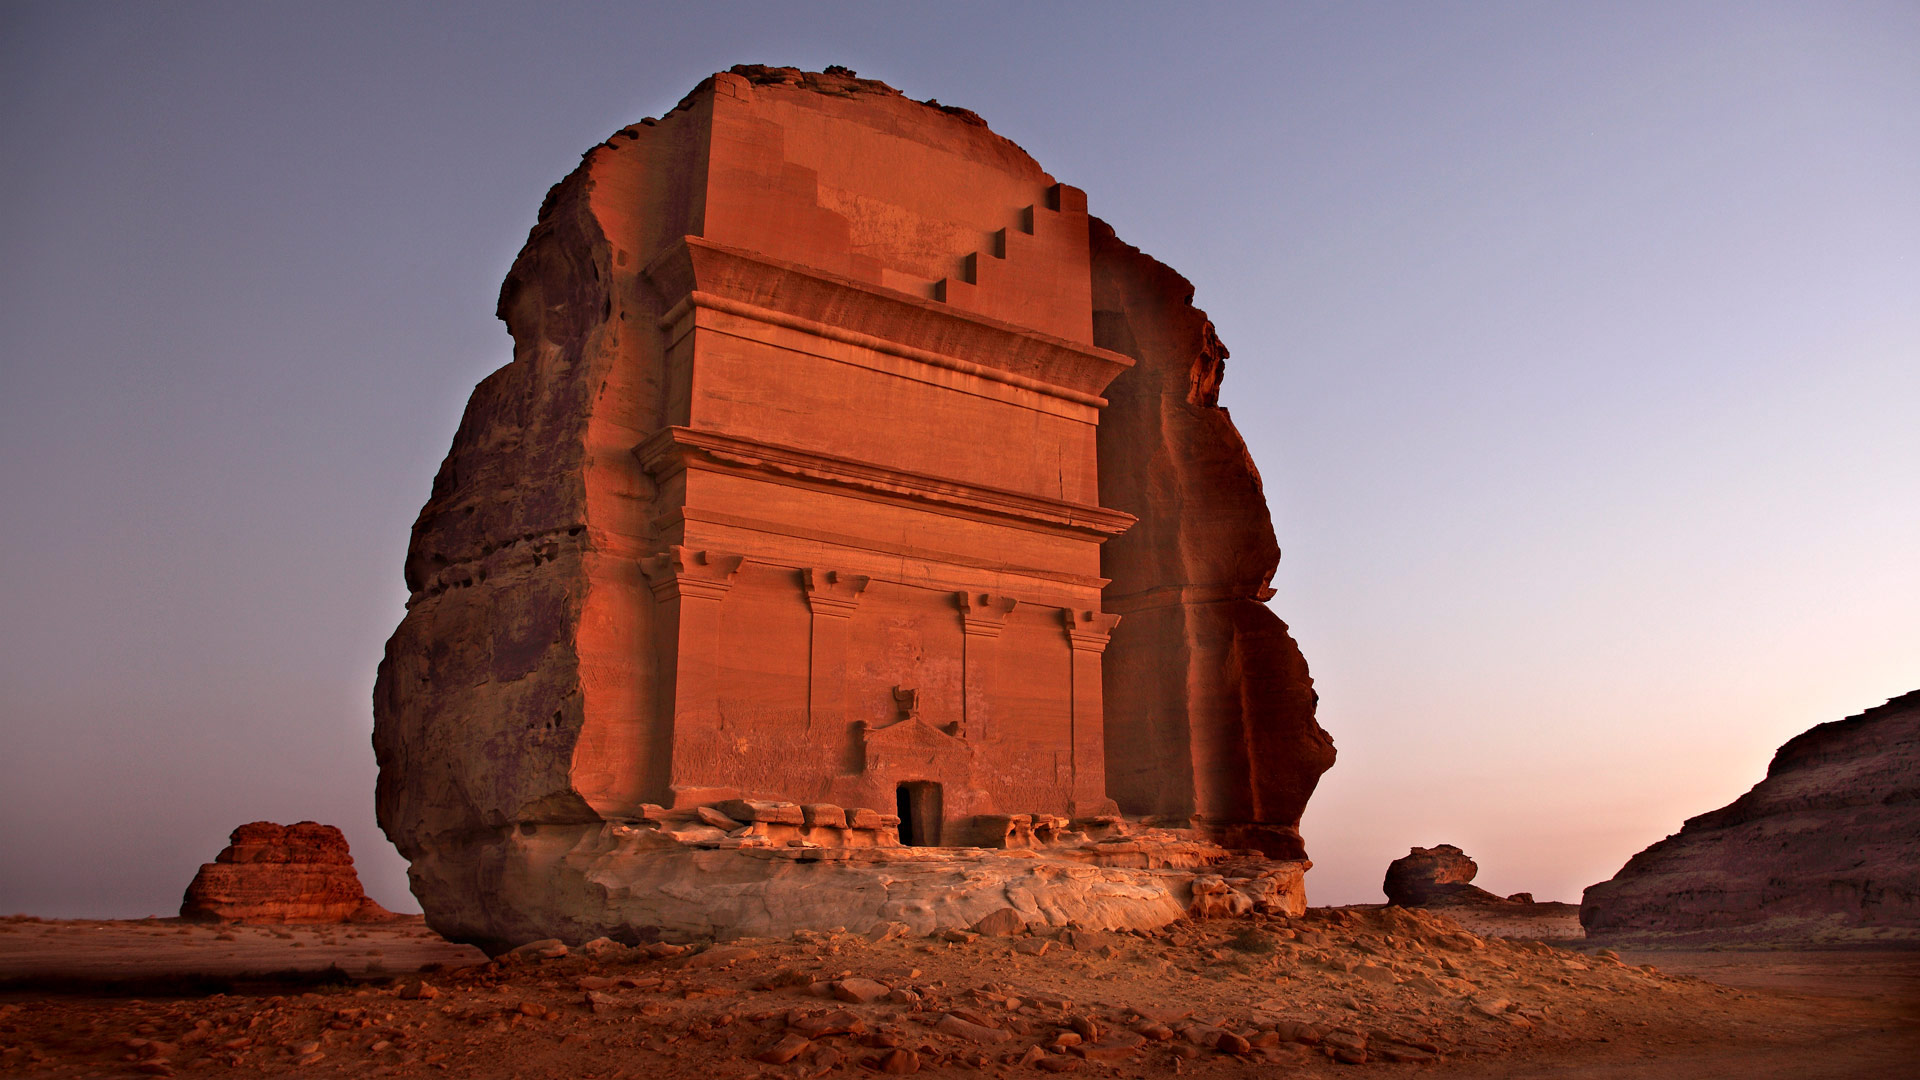 Mada'in Saleh archeological site in Saudi Arabia (© Bruno Zanzottera/Aurora Photos)